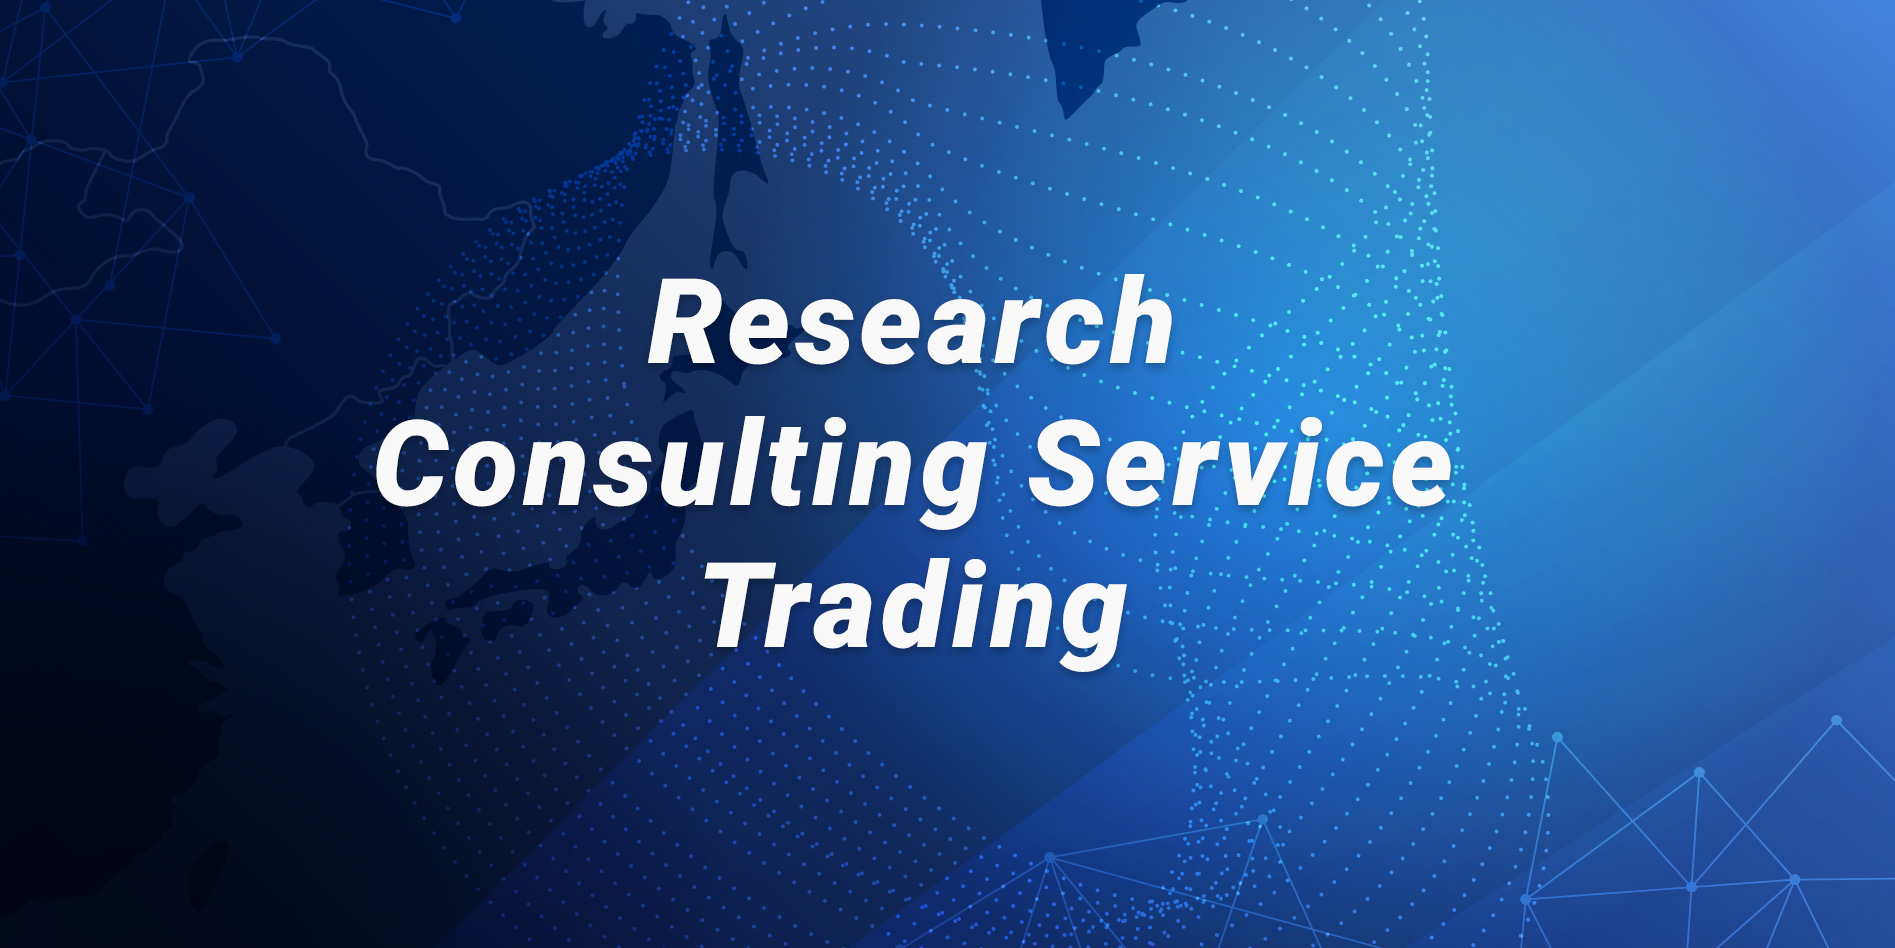 Research and Consulting service